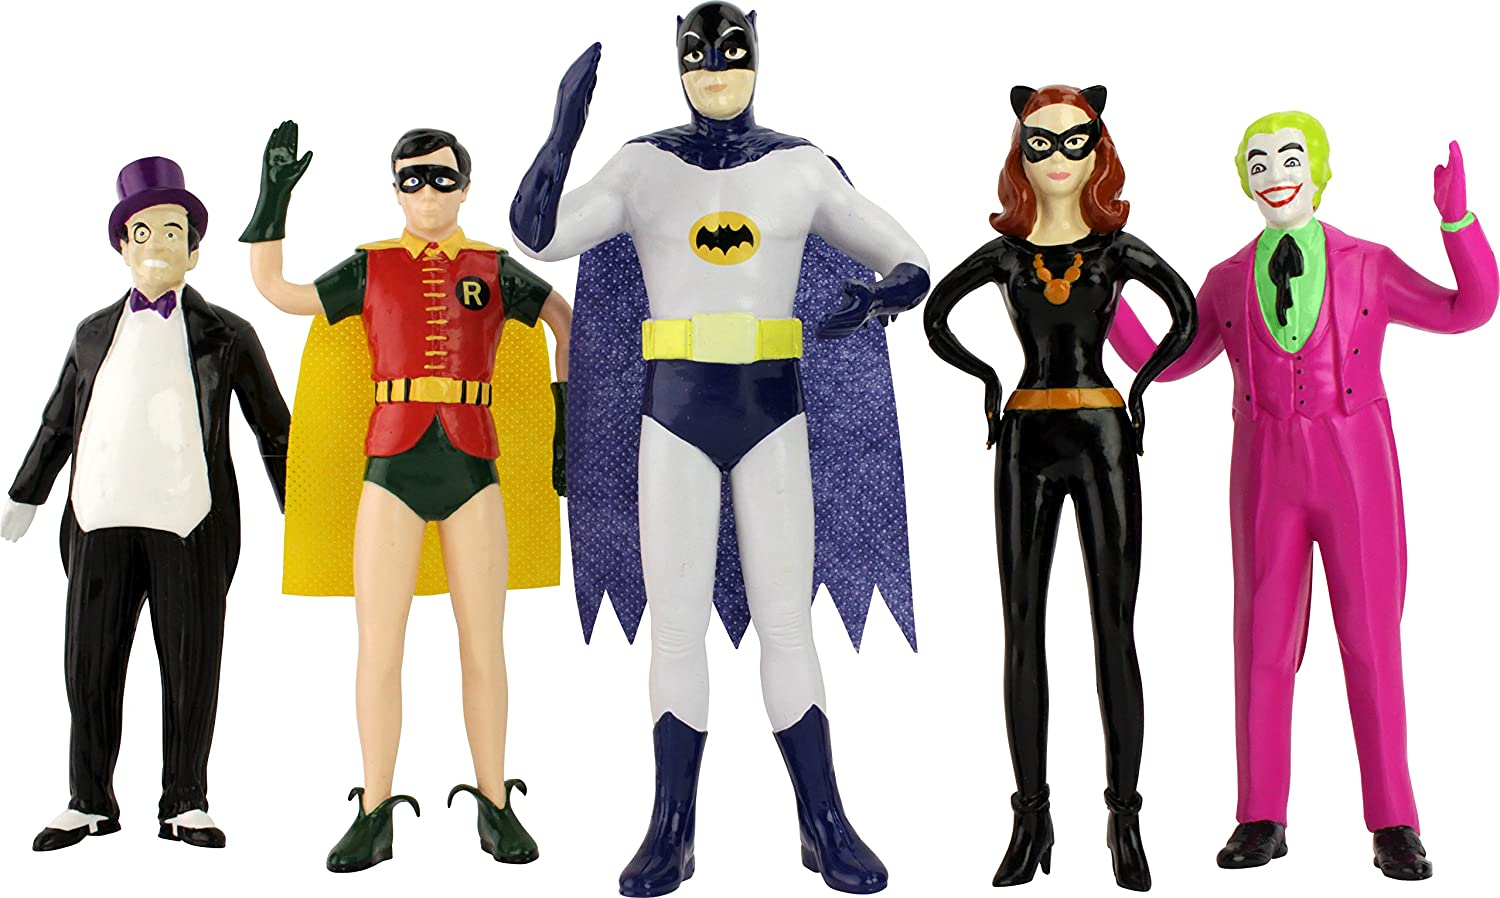 Batman Figure Classic tv Series Set of Five, Includes The Penguin, Batman, cat Woman, and The Joker, Actual Size Over 7  Tall, Outstanding Window Box Gift Packaging.